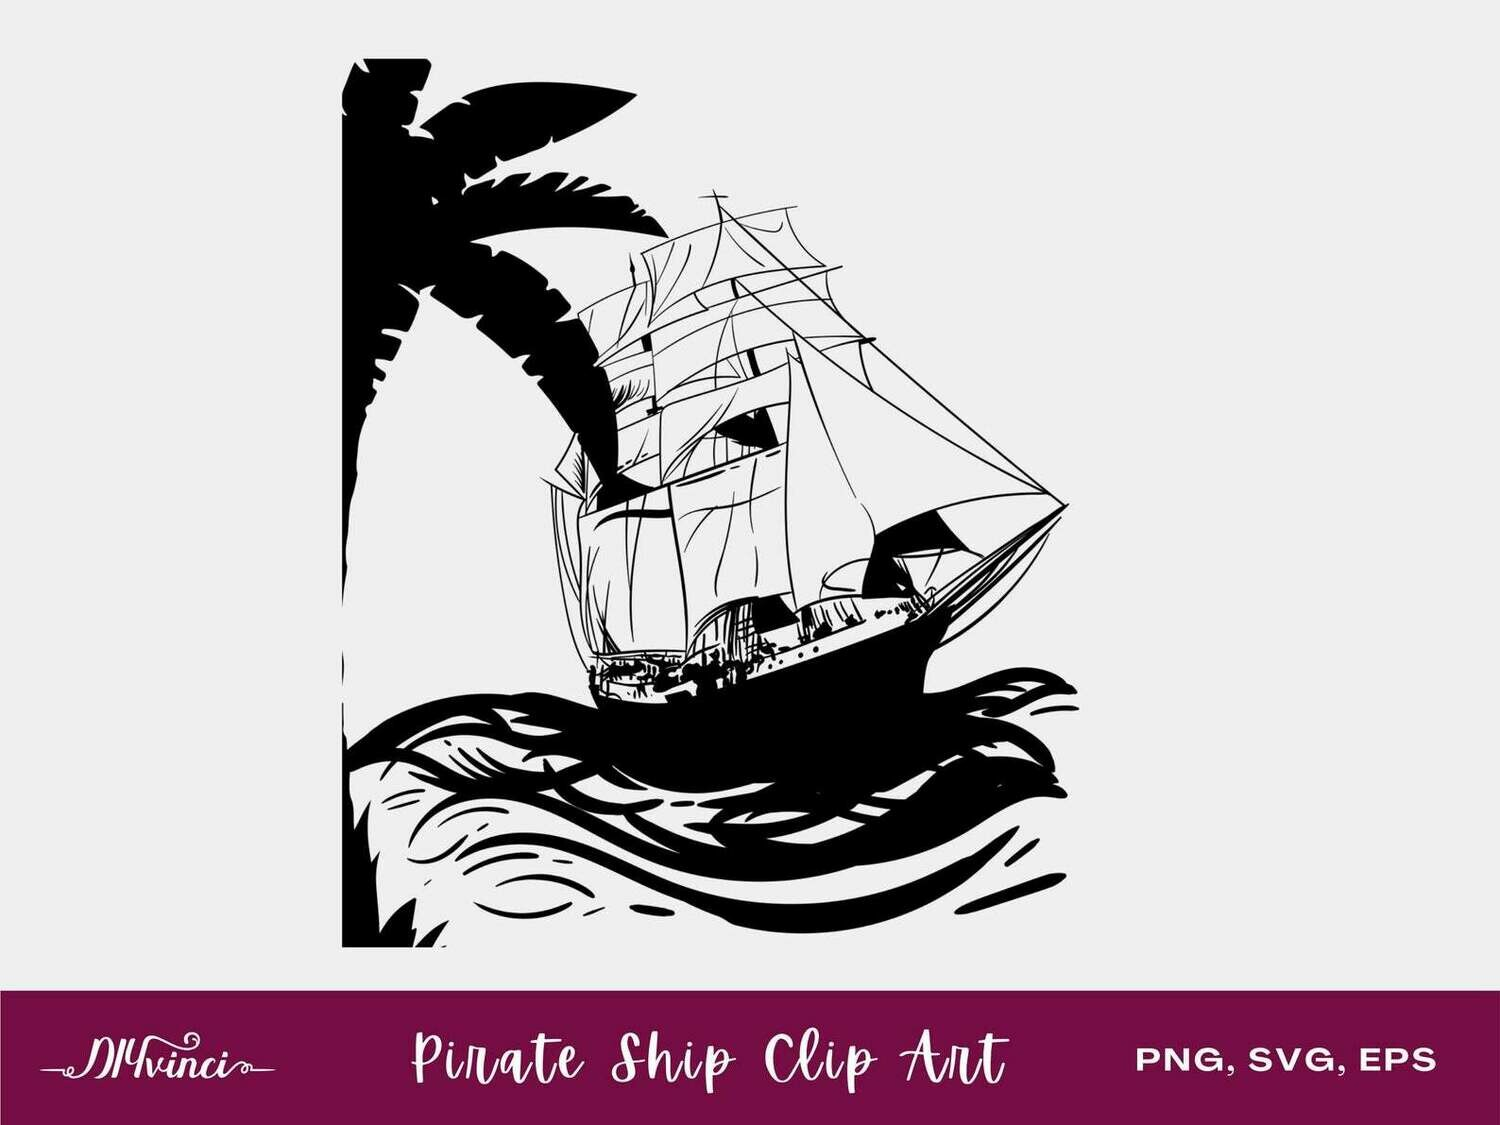 Pirate Ship Clip Art - PNG, SVG, EPS - Personal & Commercial Use